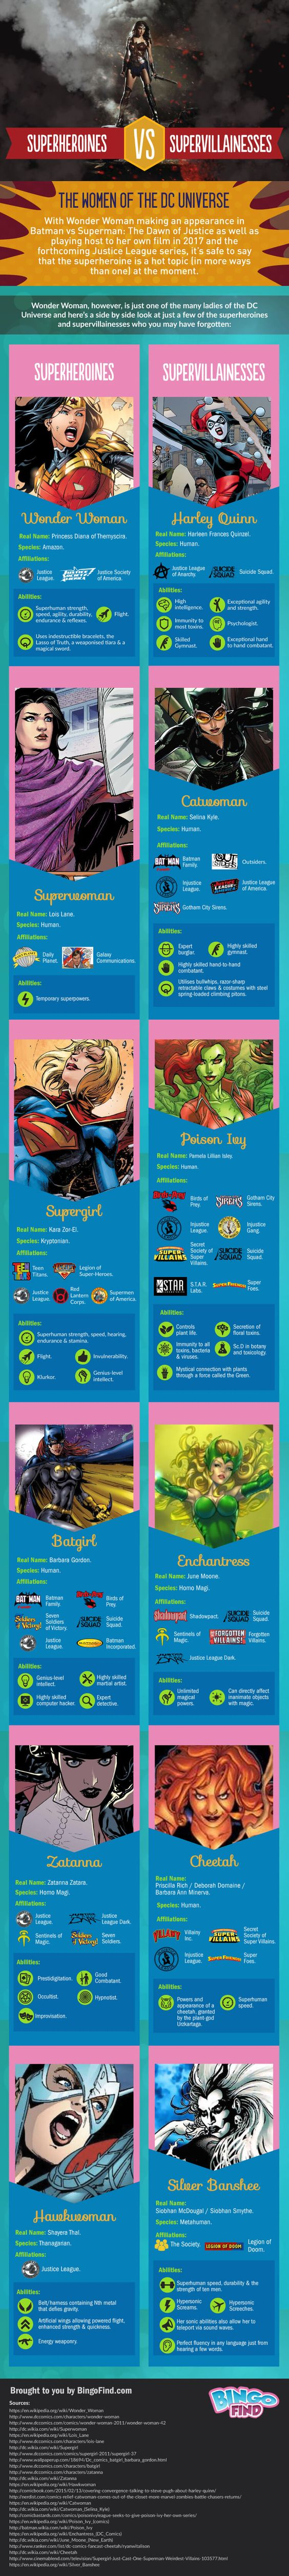 Superheroines vs Supervillainesses: The Women of the DC Universe #Infographic #Entertainment